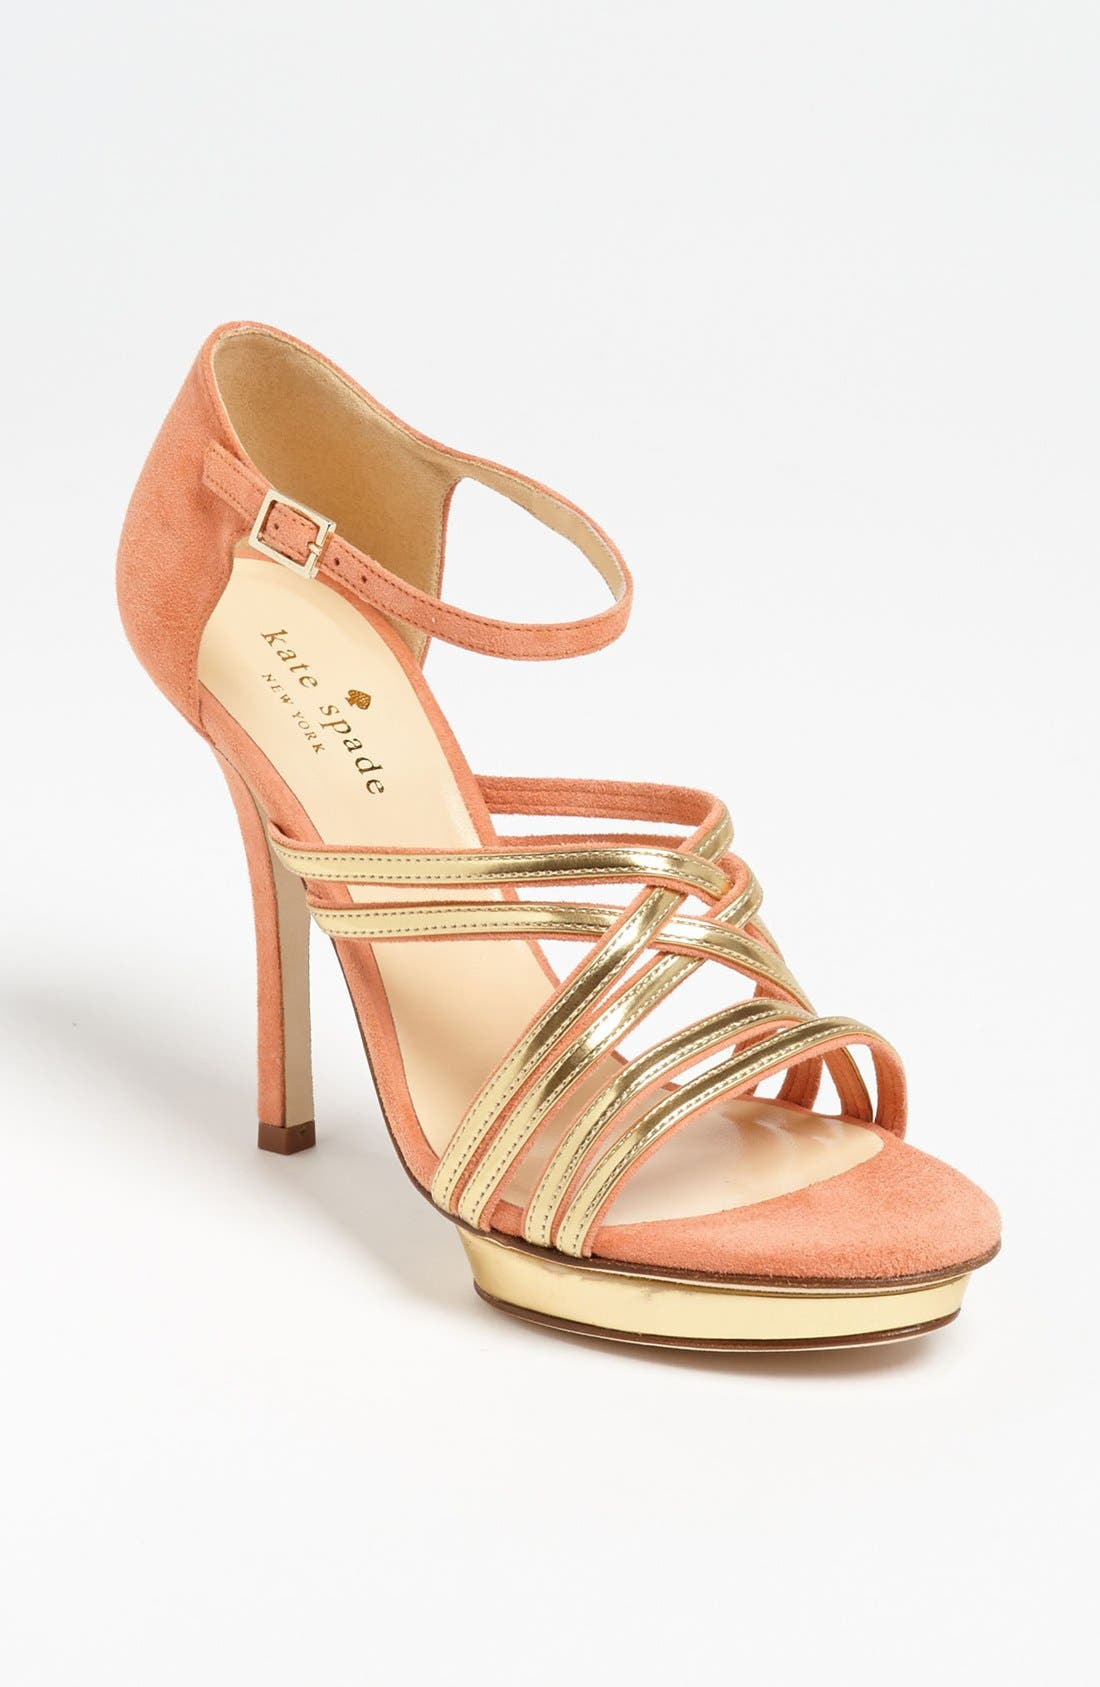 Main Image - kate spade new york 'vanity' sandal